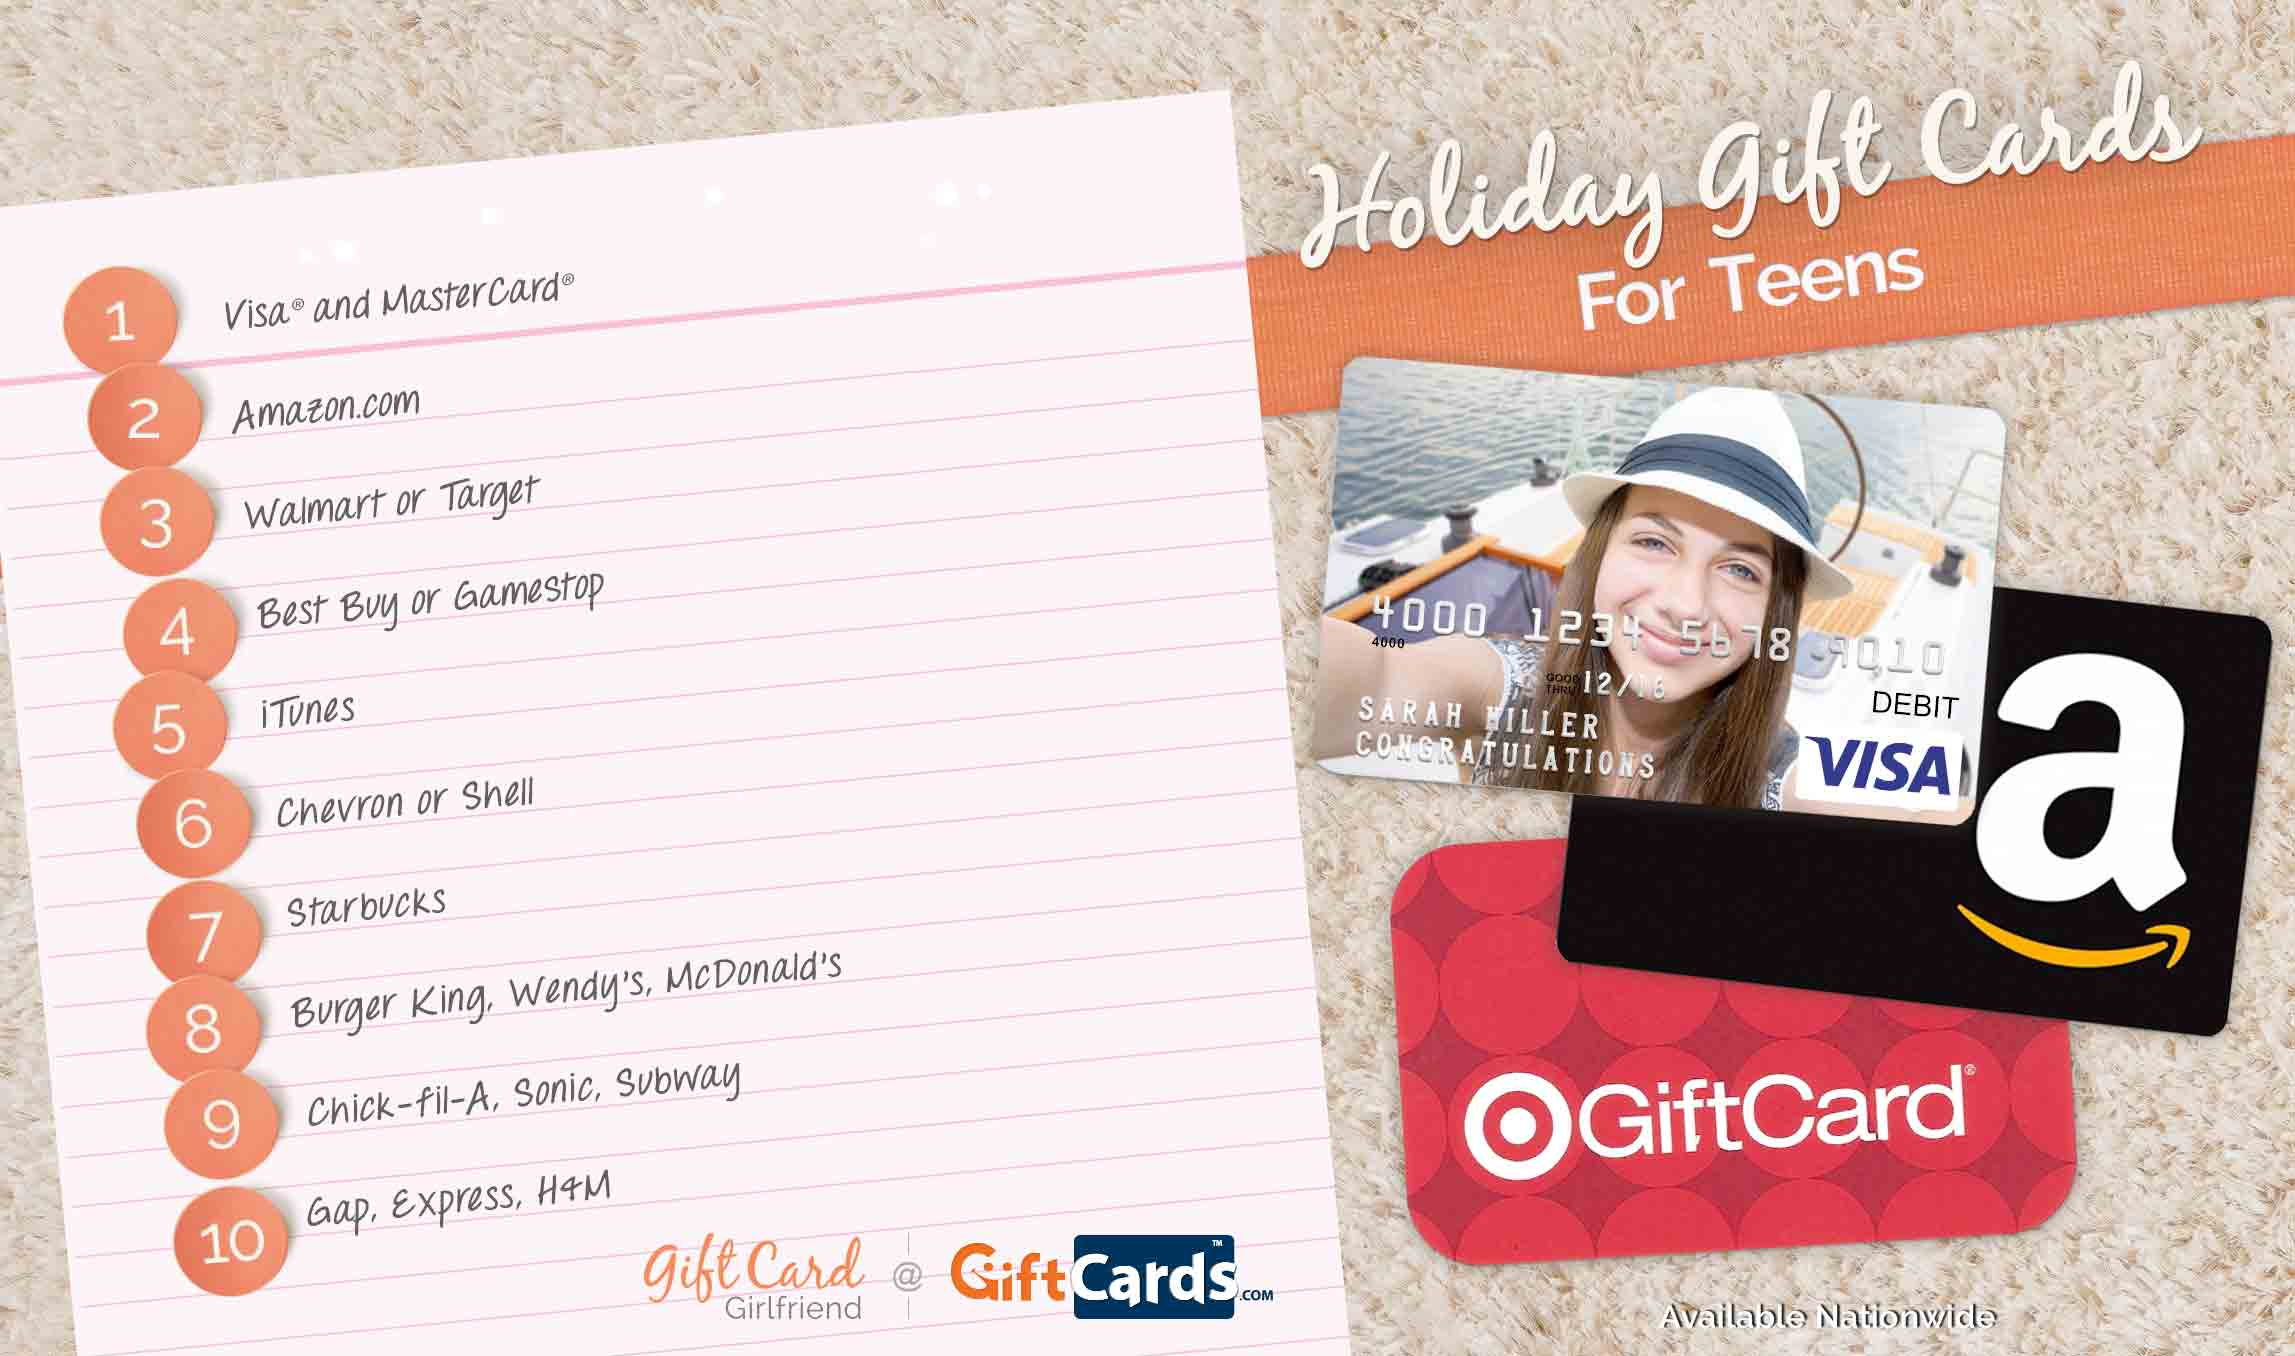 what makes a good gift card for teens